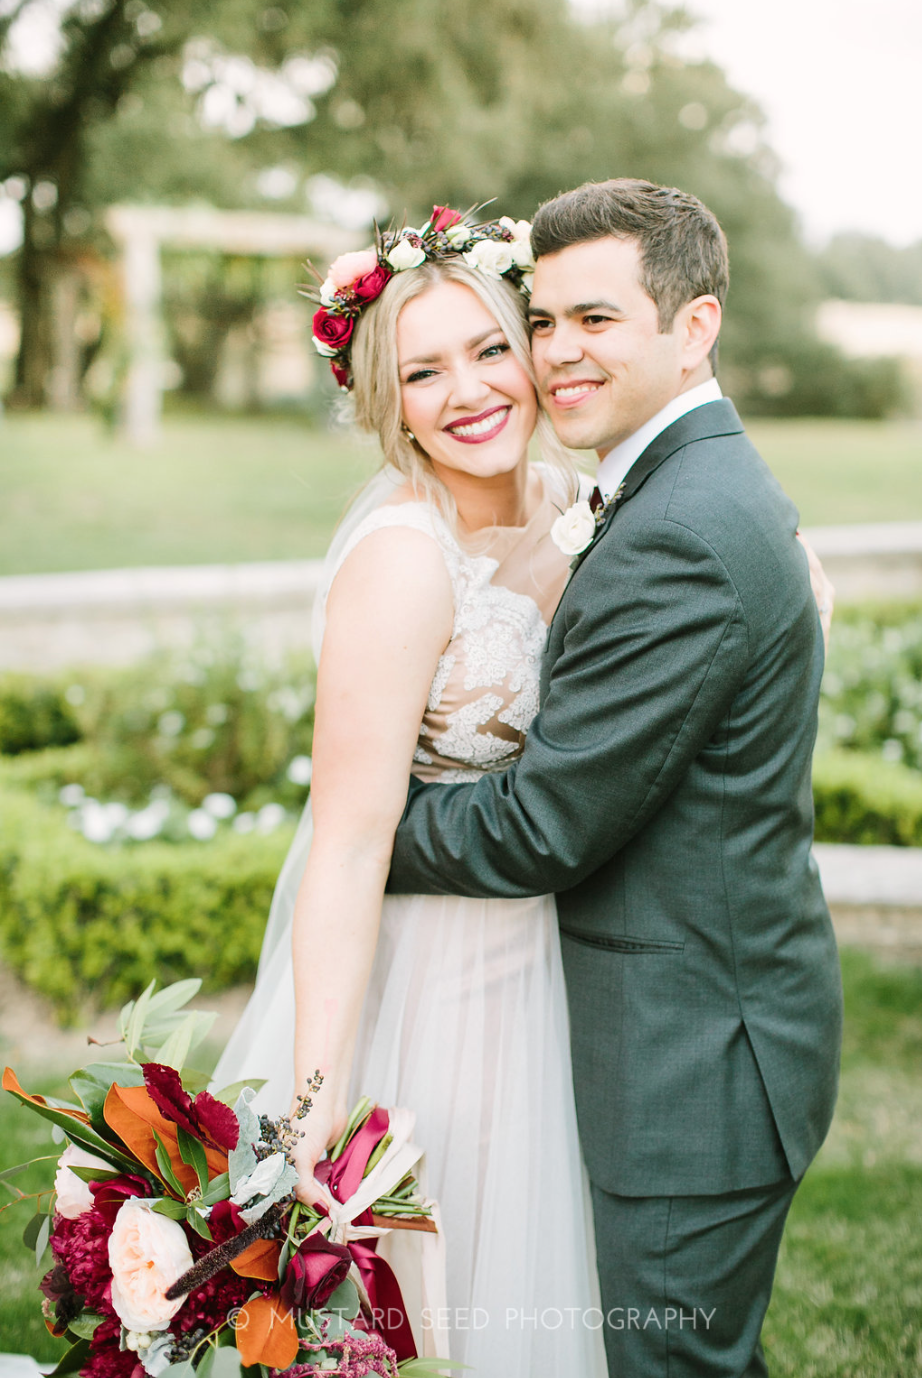 All smiles from the newlyweds. Bridal Bouquet & Flower Crown by Maxit Flower Design in Houston, TX.